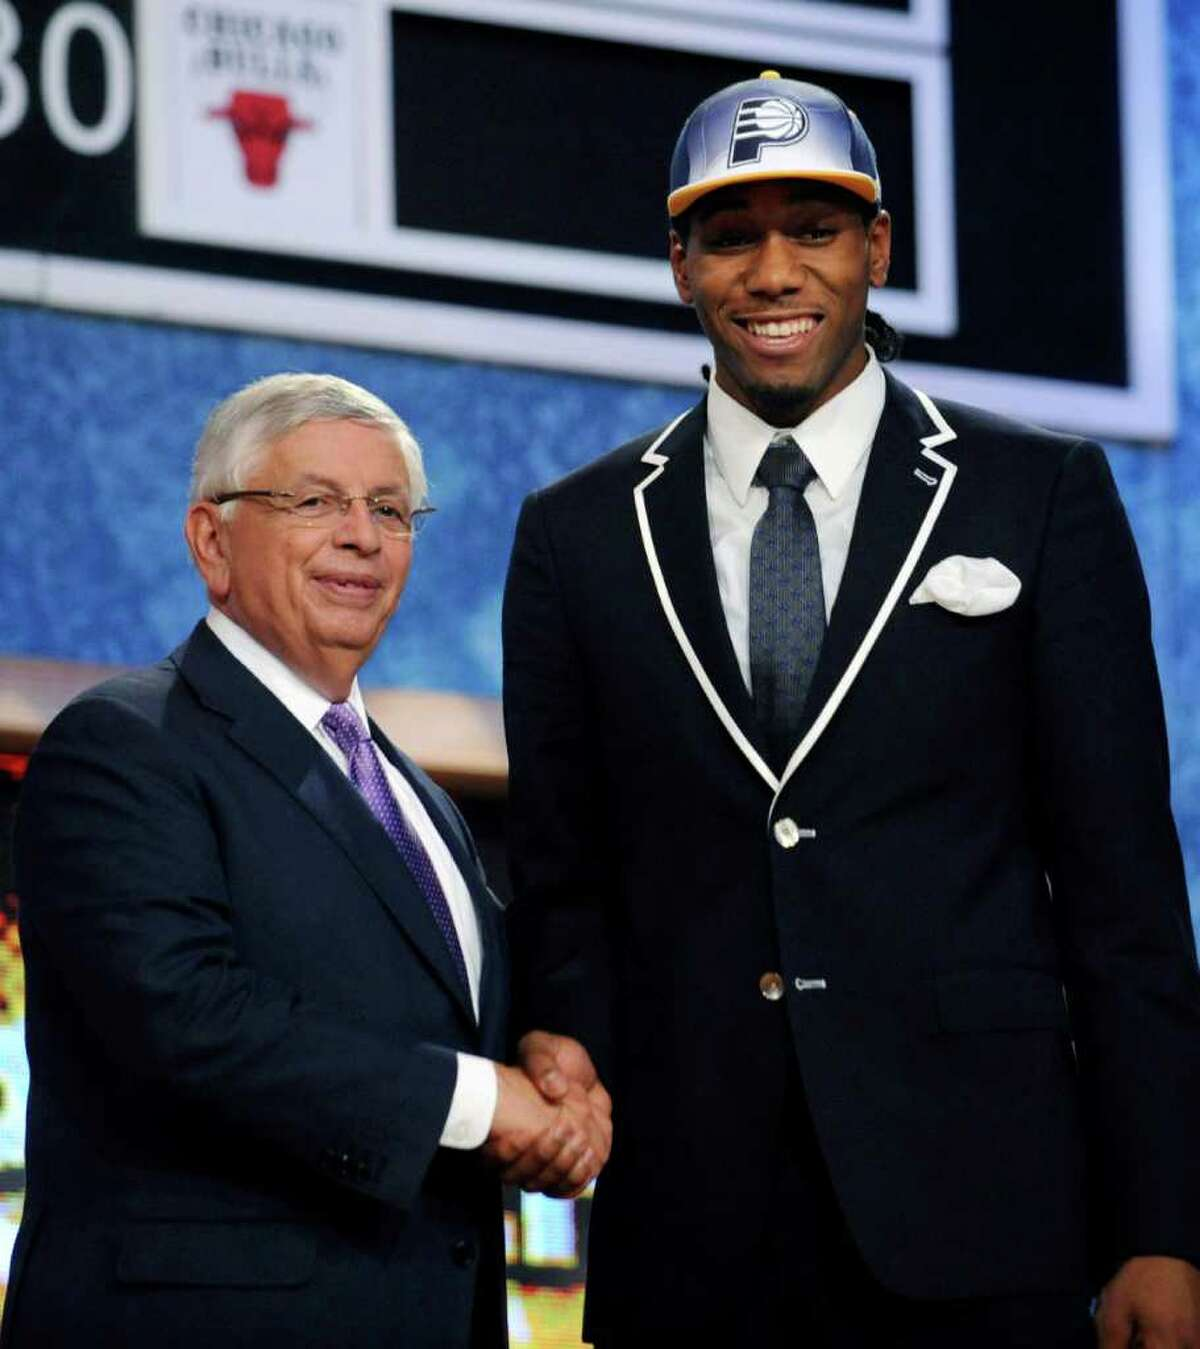 KAWHI LEONARD'S FIRST DAYS AS A SPUR1. Drafted to the Indiana Pacers then traded to the SpursPhoto: NBA Commissioner David Stern, left, poses with the No. 15 pick, San Diego State's Kawhi Leonard, who was selected by the Indiana Pacers in the NBA basketball draft Thursday, June 23, 2011, in Newark, N.J.